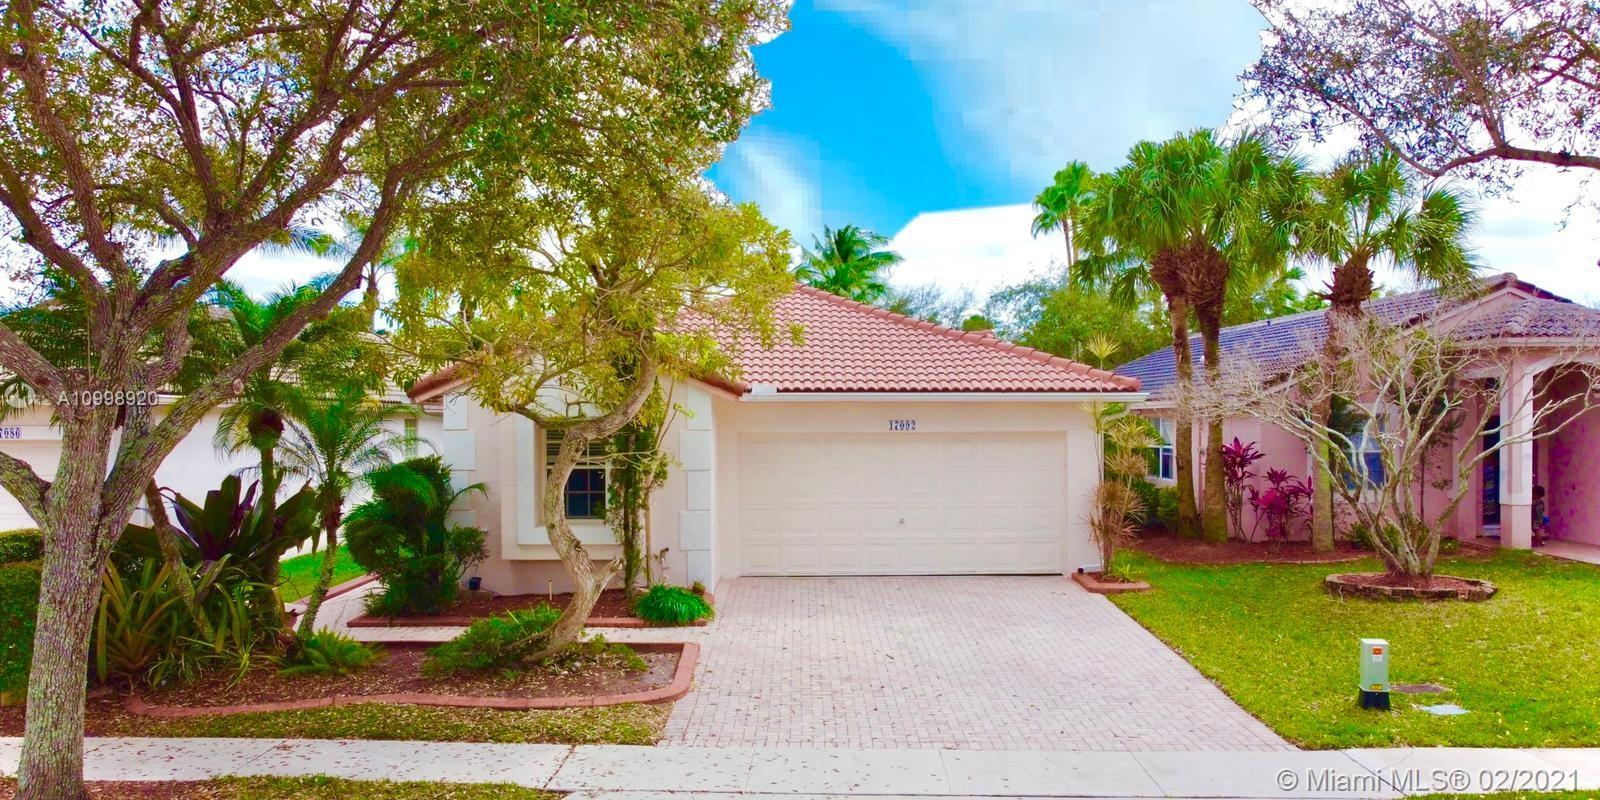 Beautiful 1 story home located in the much sought-after community of Pembroke Isles. This home features an open floor plan, vaulted ceilings, stainless-steel appliance. Wood floors on bedrooms and tile flooring throughout the entire home with spacious bedrooms, a walk-in closet, and more. The exterior features a  YARD with more than enough space for a pool. HOA includes- lawn maintenance, cable, ADT security, 24 roaming security, clubhouse, 4 pools, tennis, soccer, basketball, and more. Resort-style living with excellent A-rated schools.